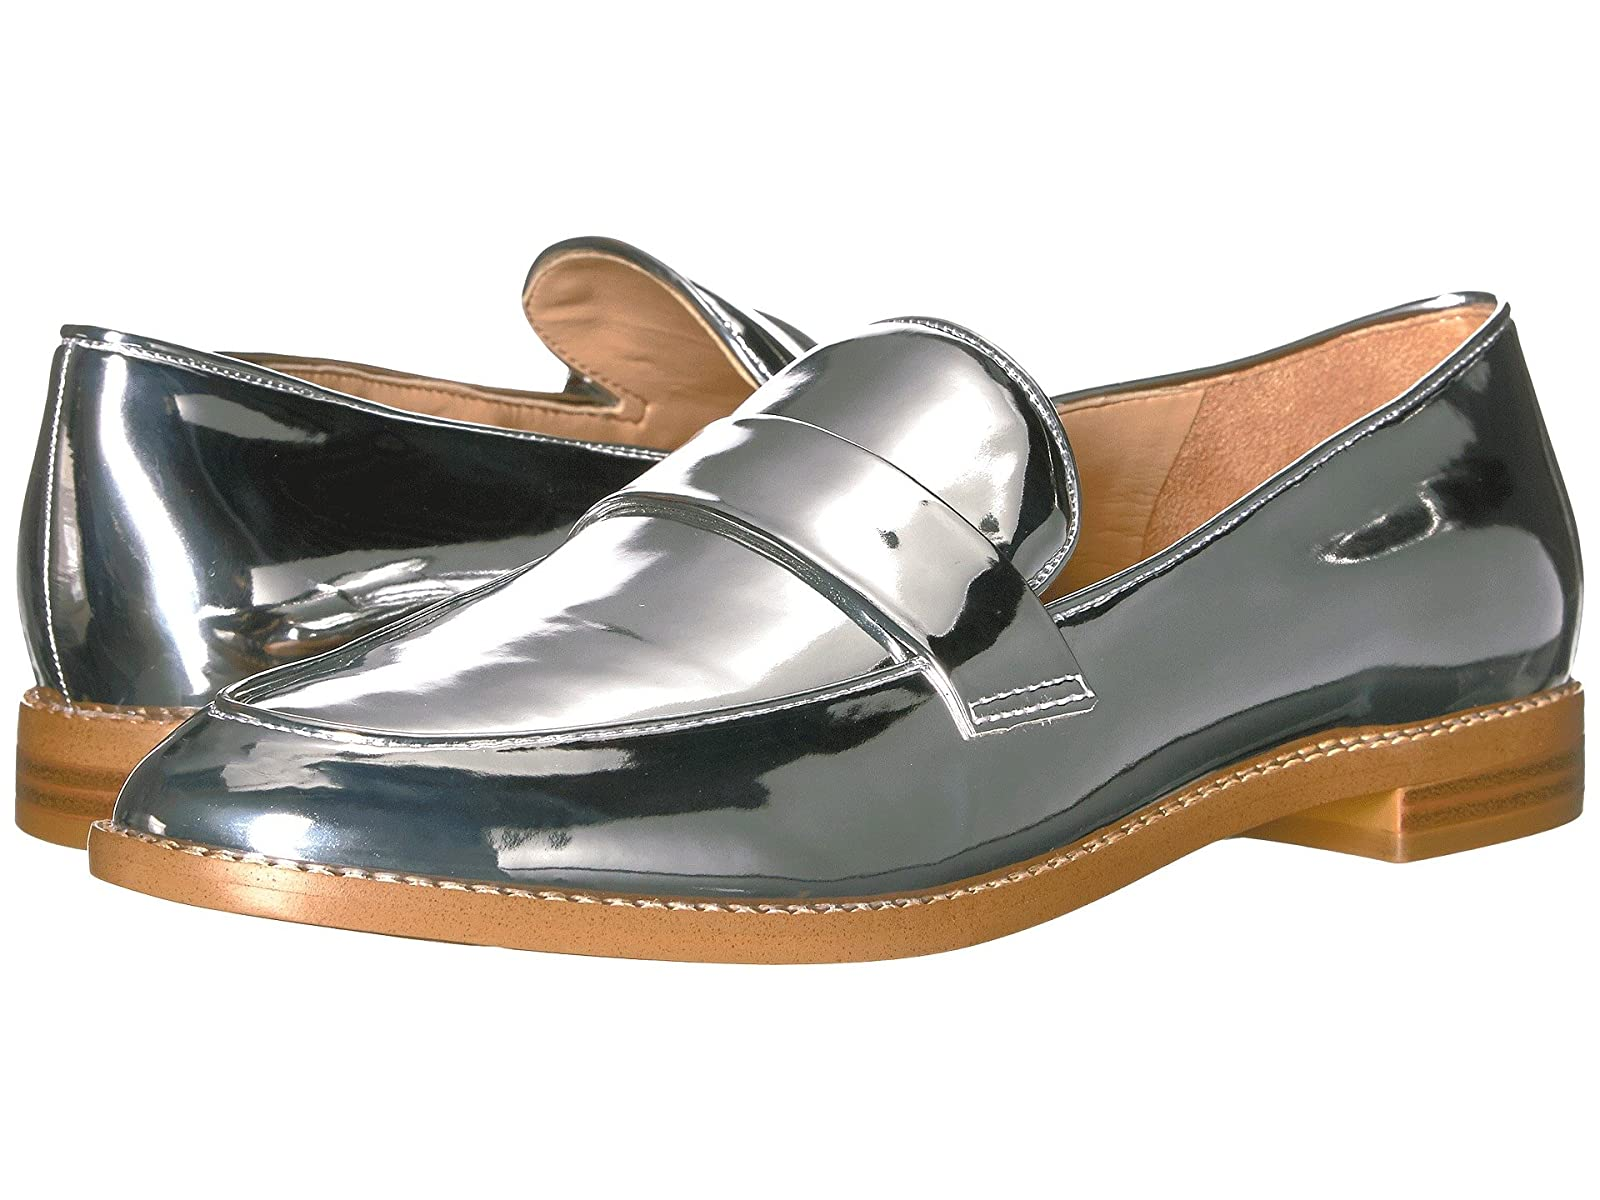 Franco Sarto HudleyCheap and distinctive eye-catching shoes